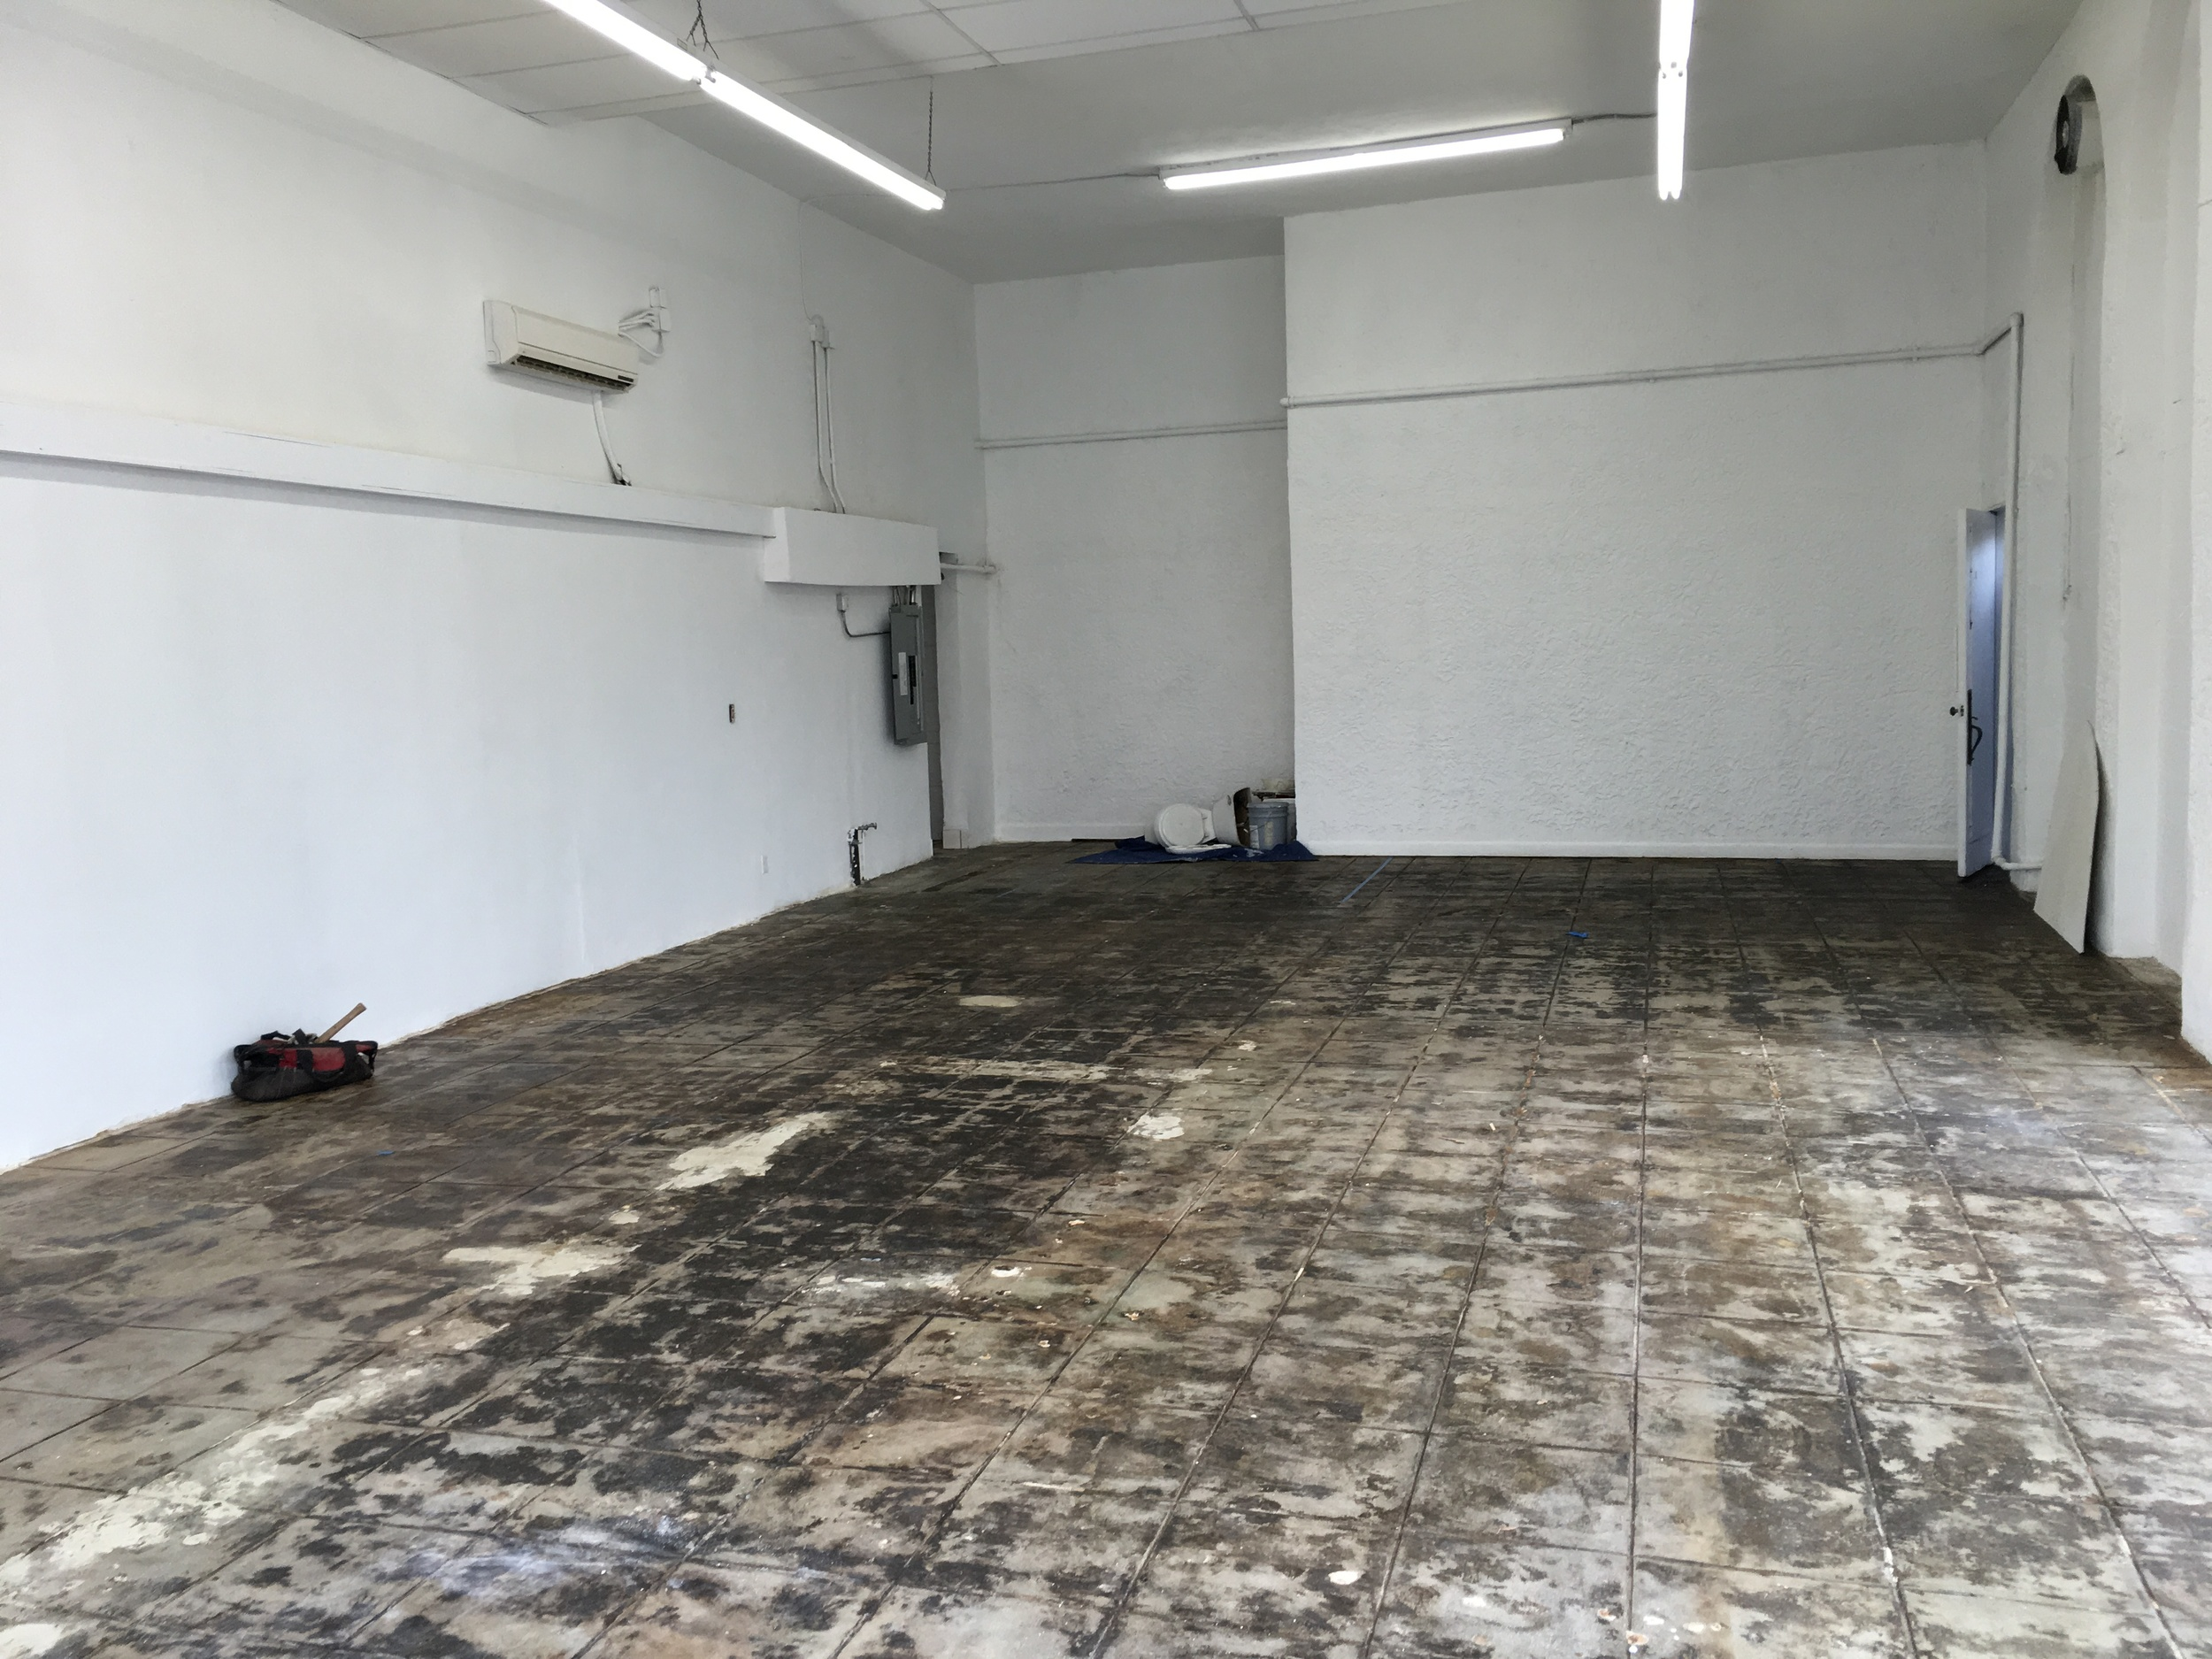 Concrete floor is scraped, sanded and sealed.